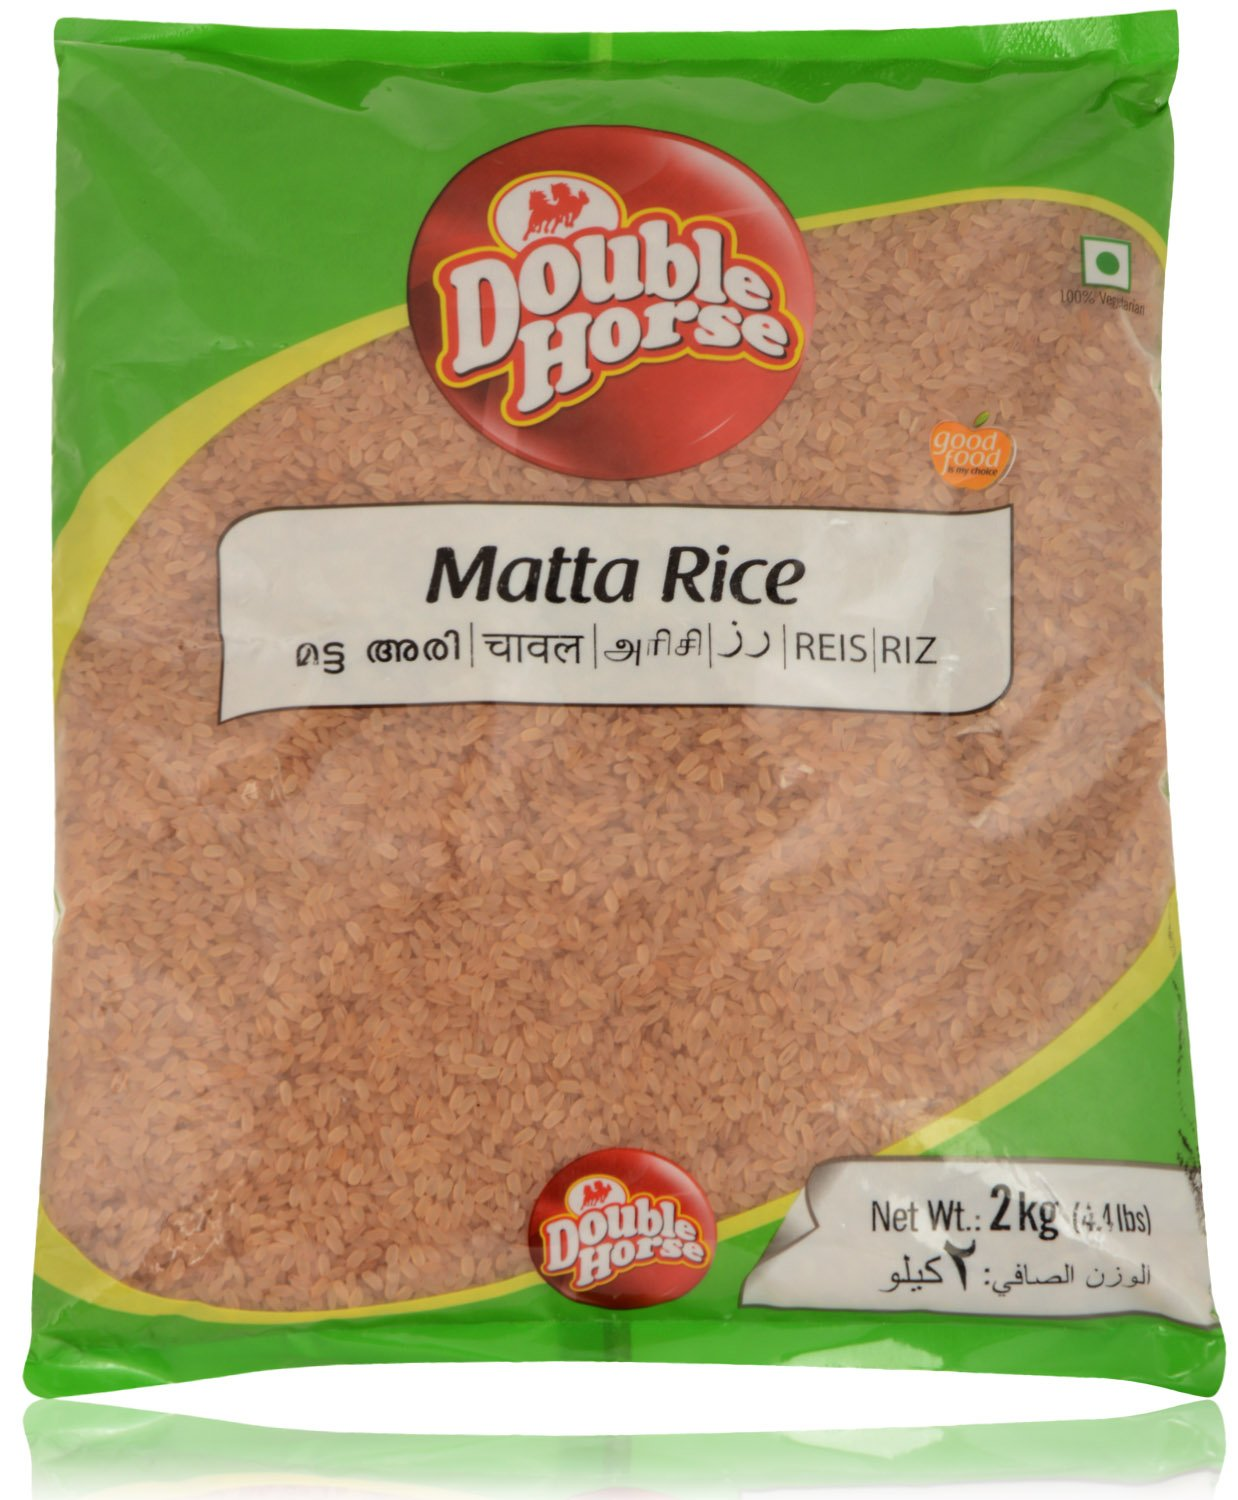 Double Horse Palakkadan Matta Rice 2 kg (Short Grain): Amazon.in ... : trasmatta plast : Inredning